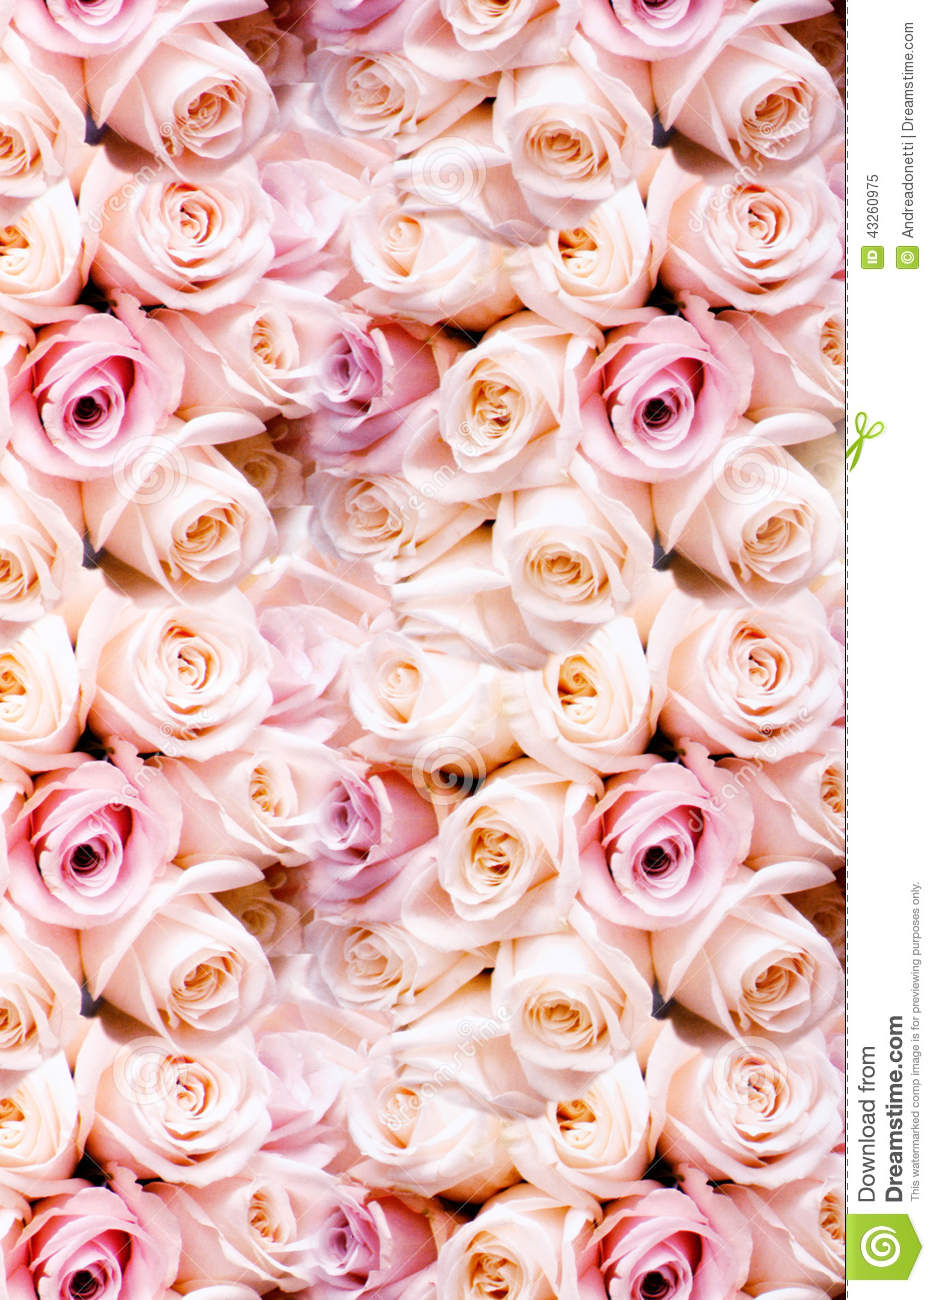 Background of fresh pink romantic roses